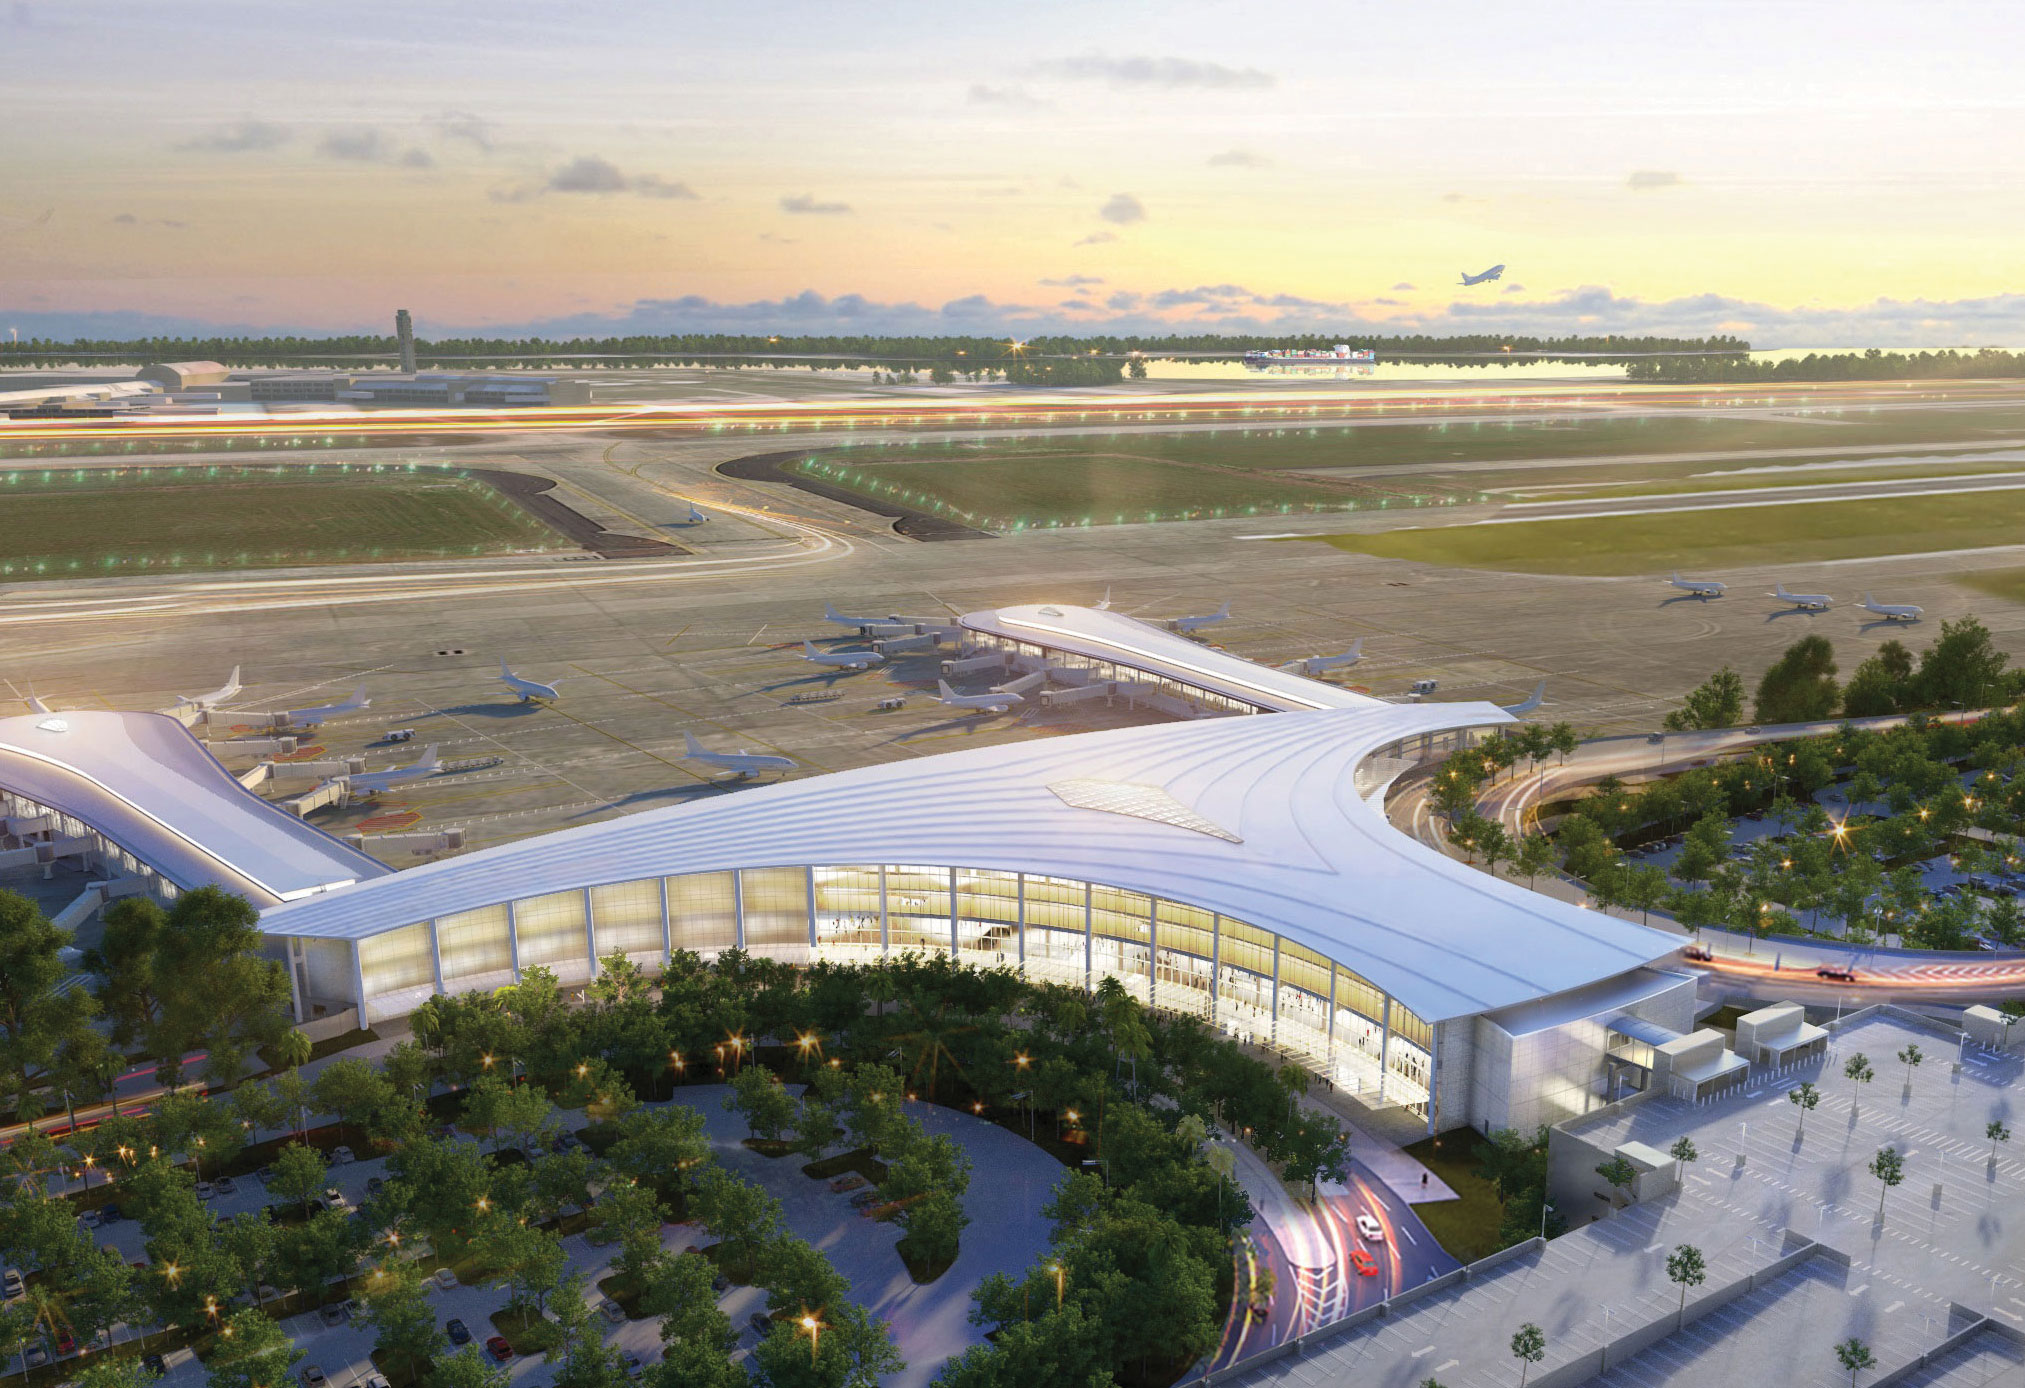 A rendering of a T-shaped airport terminal with glass curving around its edges.